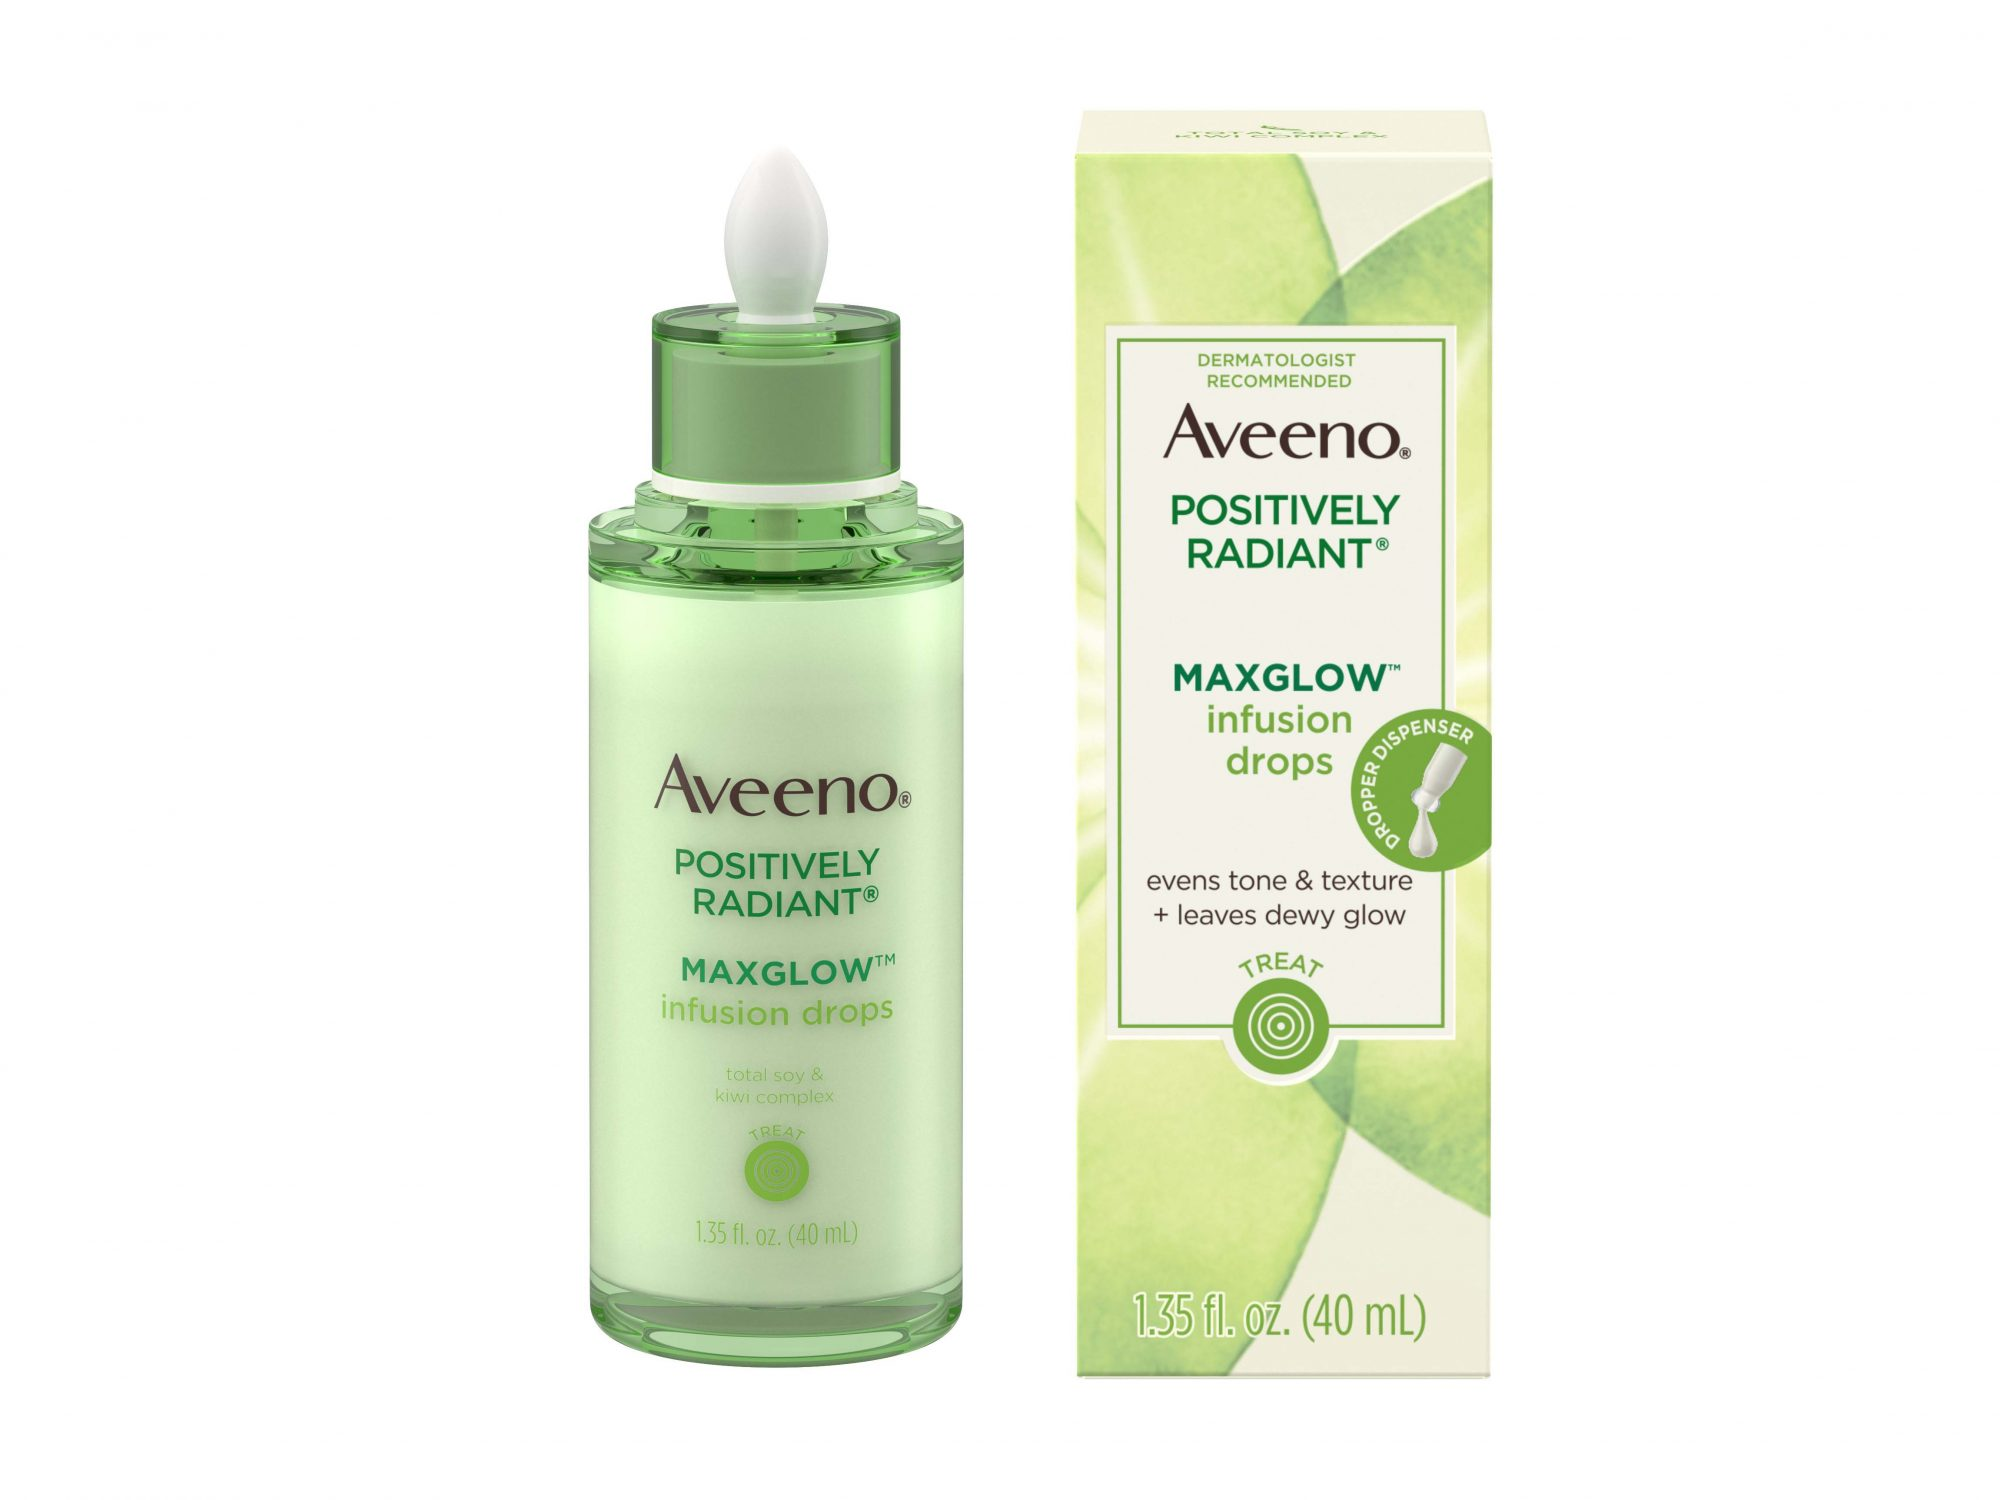 Aveeno Positively Radiant MaxGlow Infusion Drops Serum